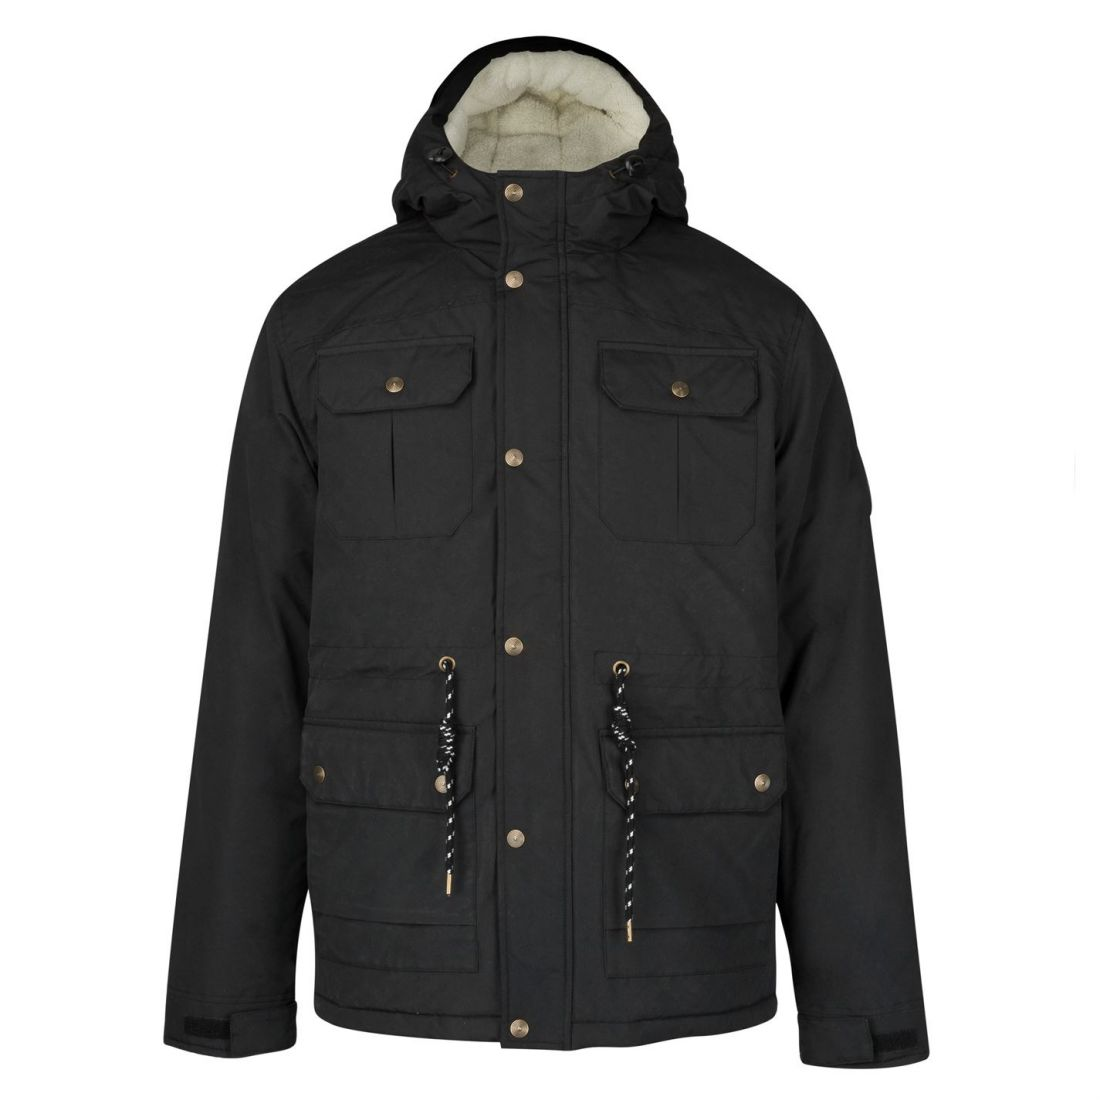 Ex M/&S Men/'s Padded Lined Quality Jacket Coat Puffer Winter Warm Marks /& Spencer